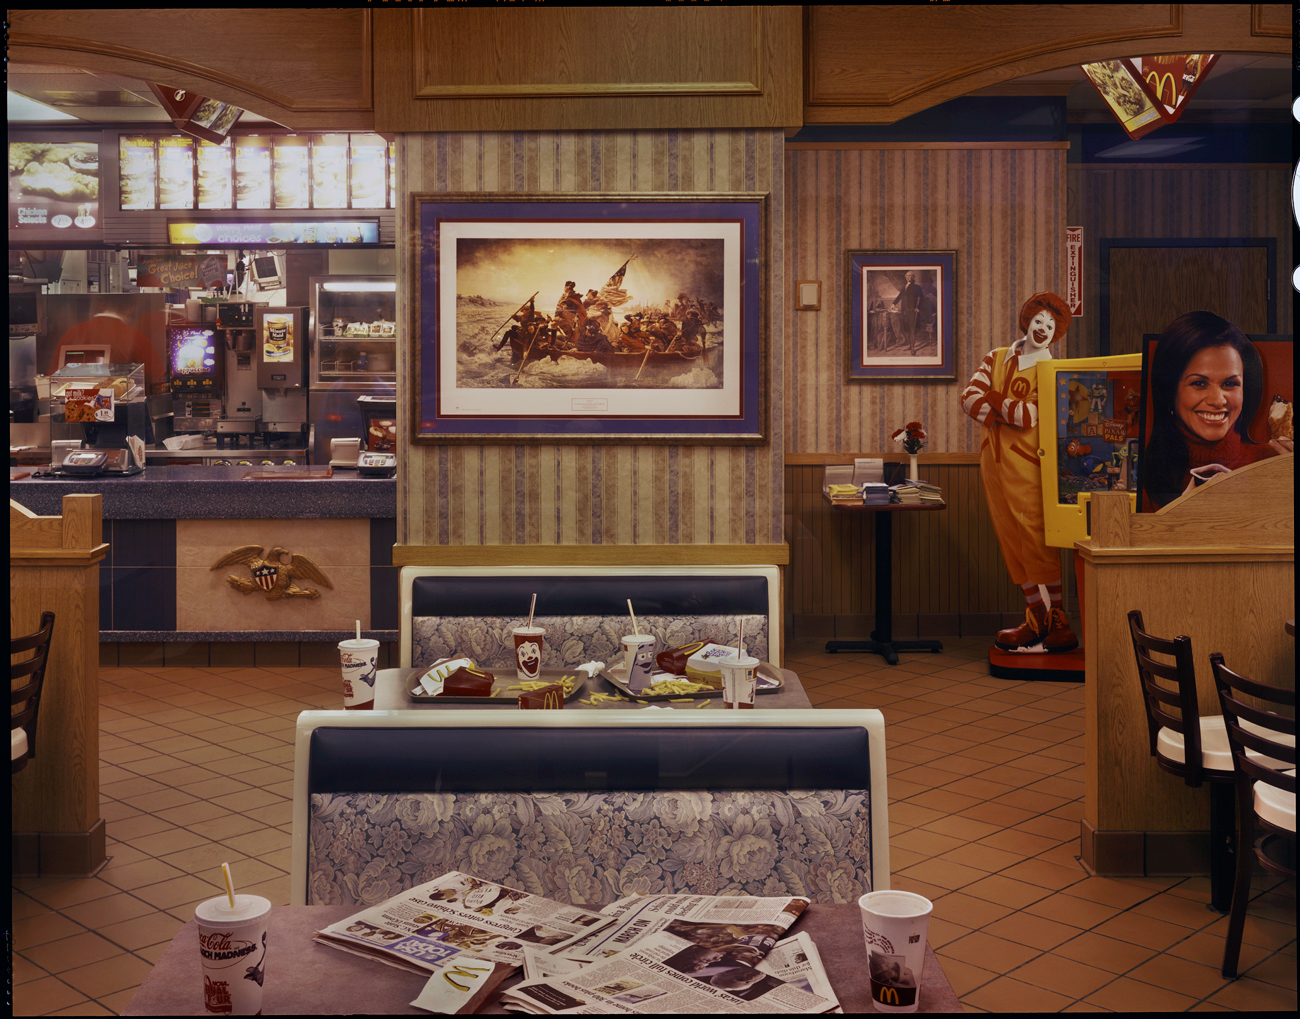 McDonald's, Valley Forge, Pennsylvania, 2005